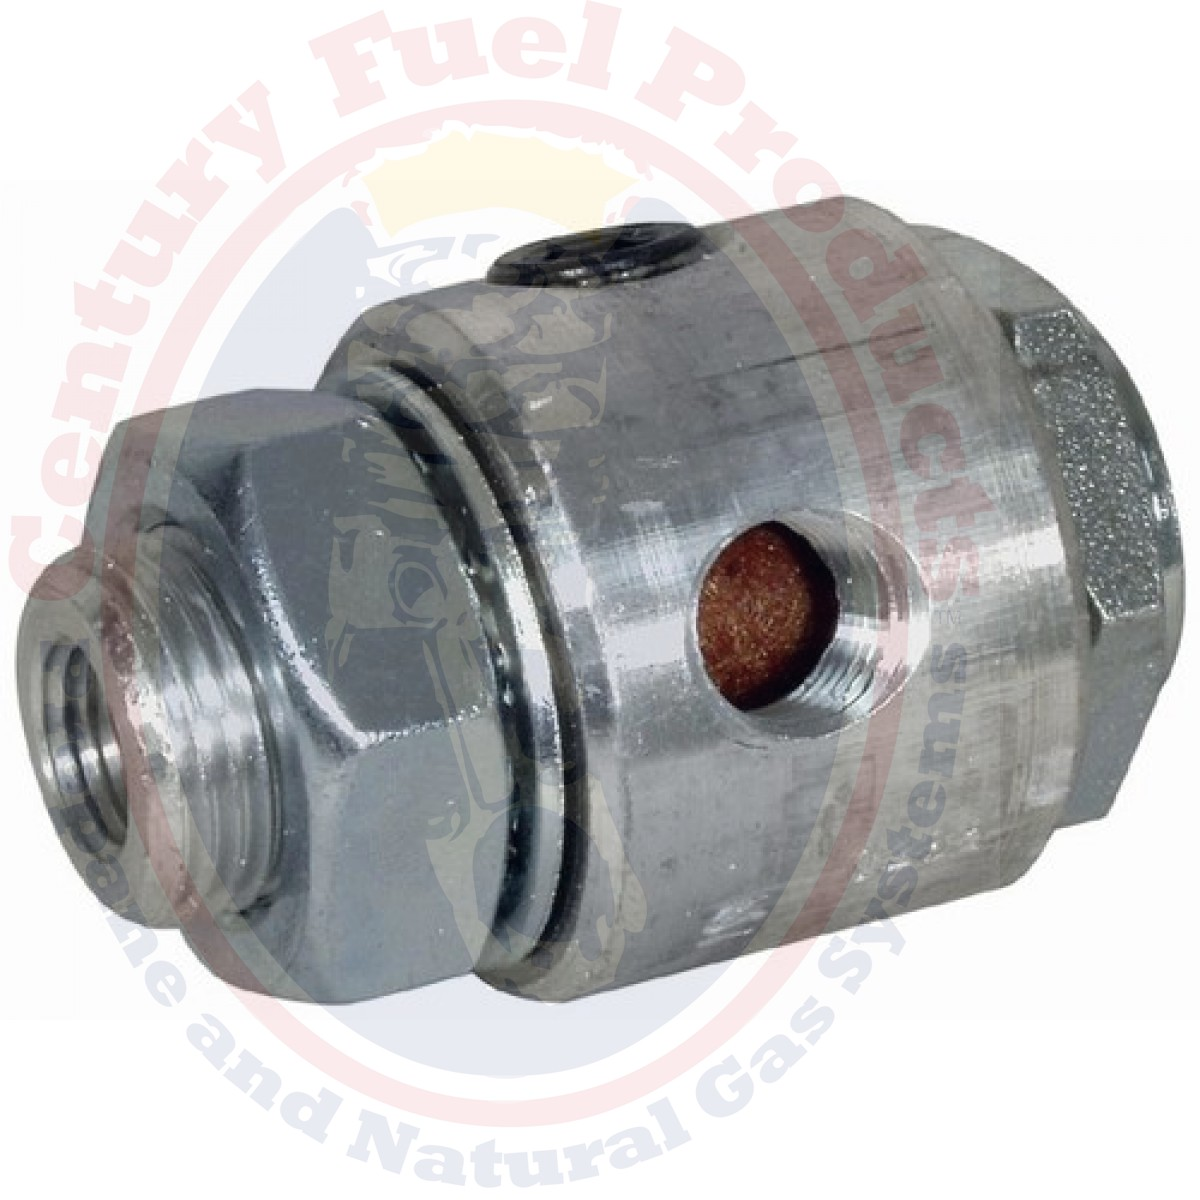 hight resolution of afc 156 bulkhead filter with magnet